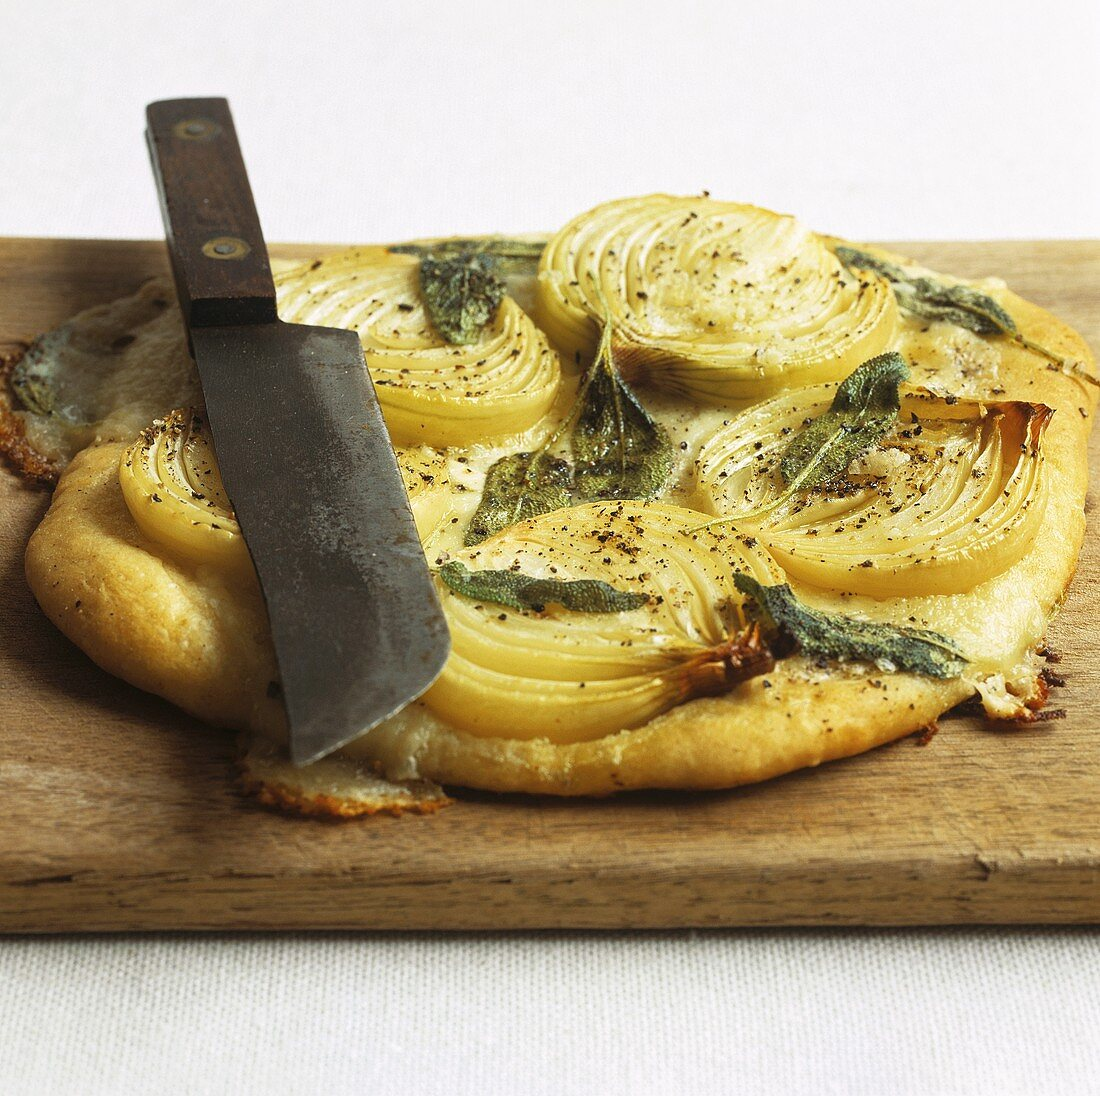 Onion and sage pizza with knife on chopping board